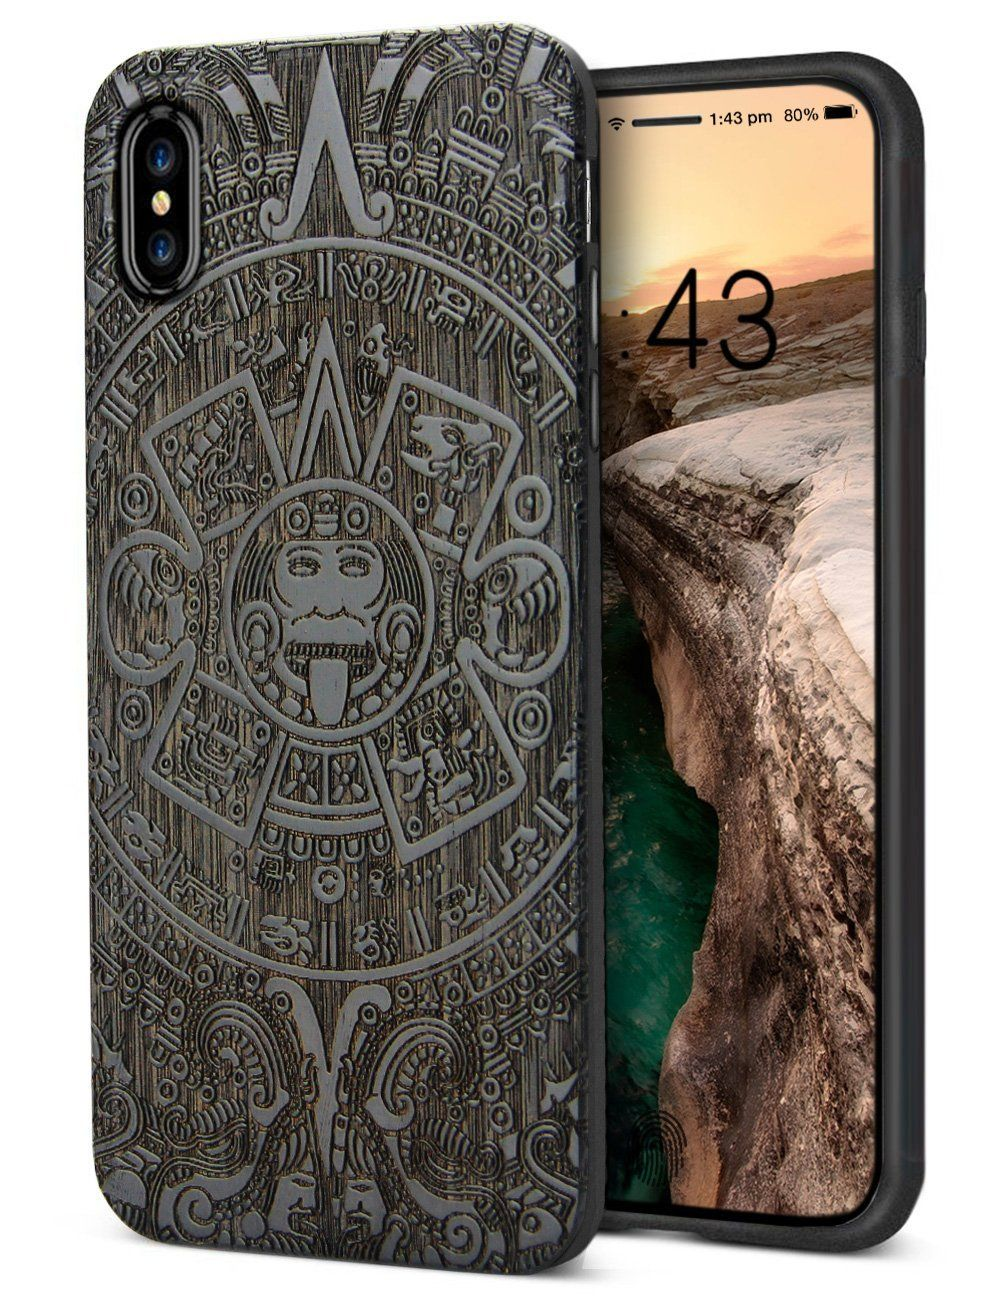 iphone x case for men, unique handmade real wood engraving totemiphone x case for men, unique handmade real wood engraving totem protective bumper for apple iphone x